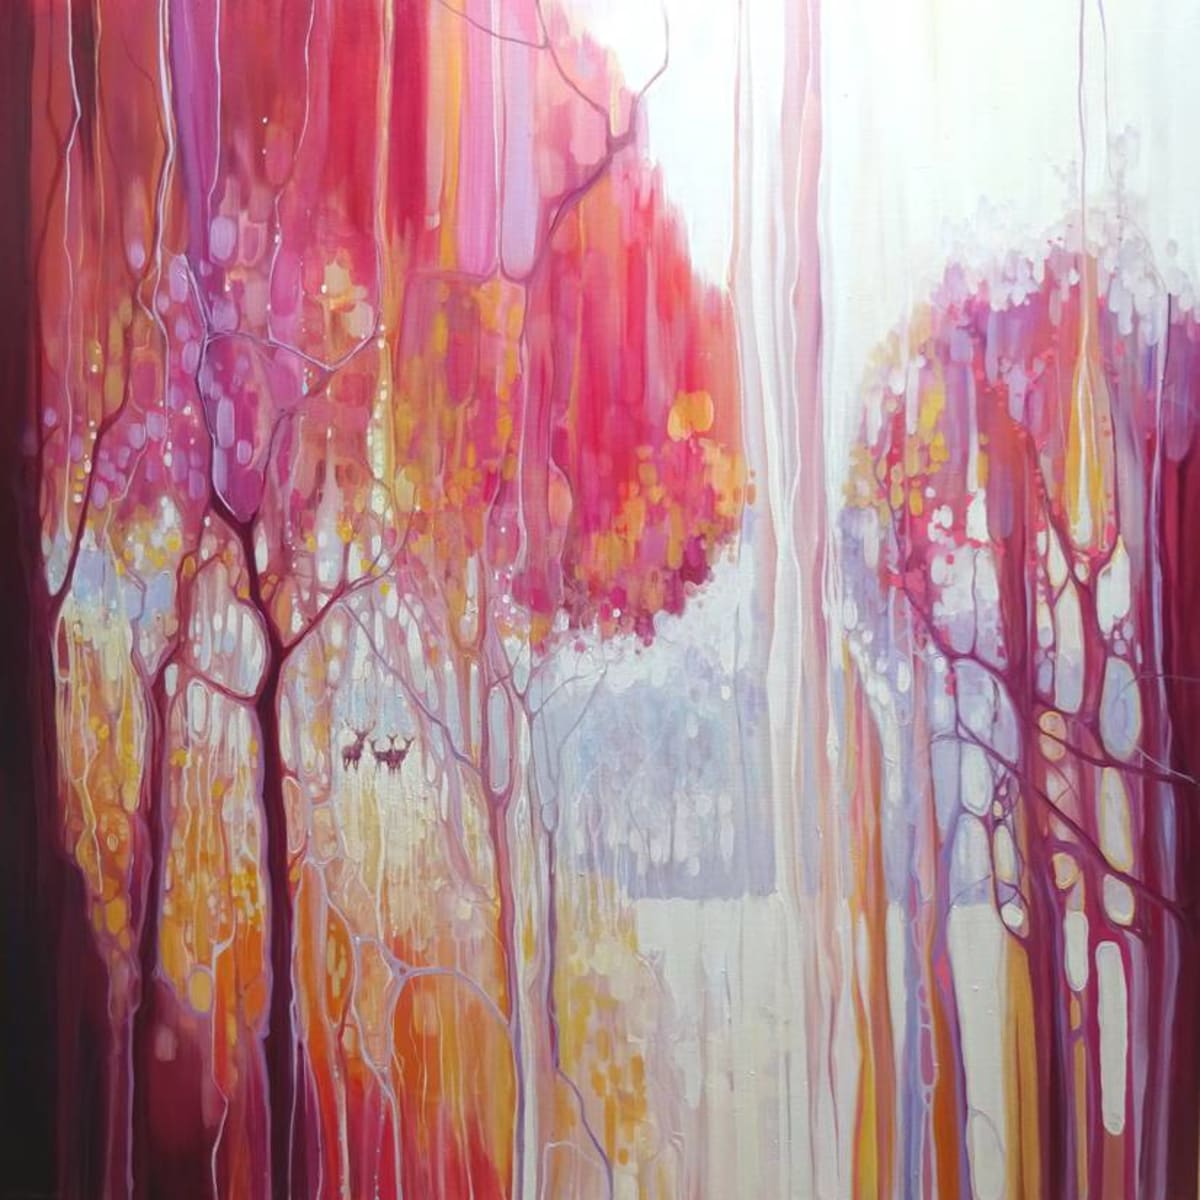 Waiting - an autumn forest landscape by Gill-Bustamante